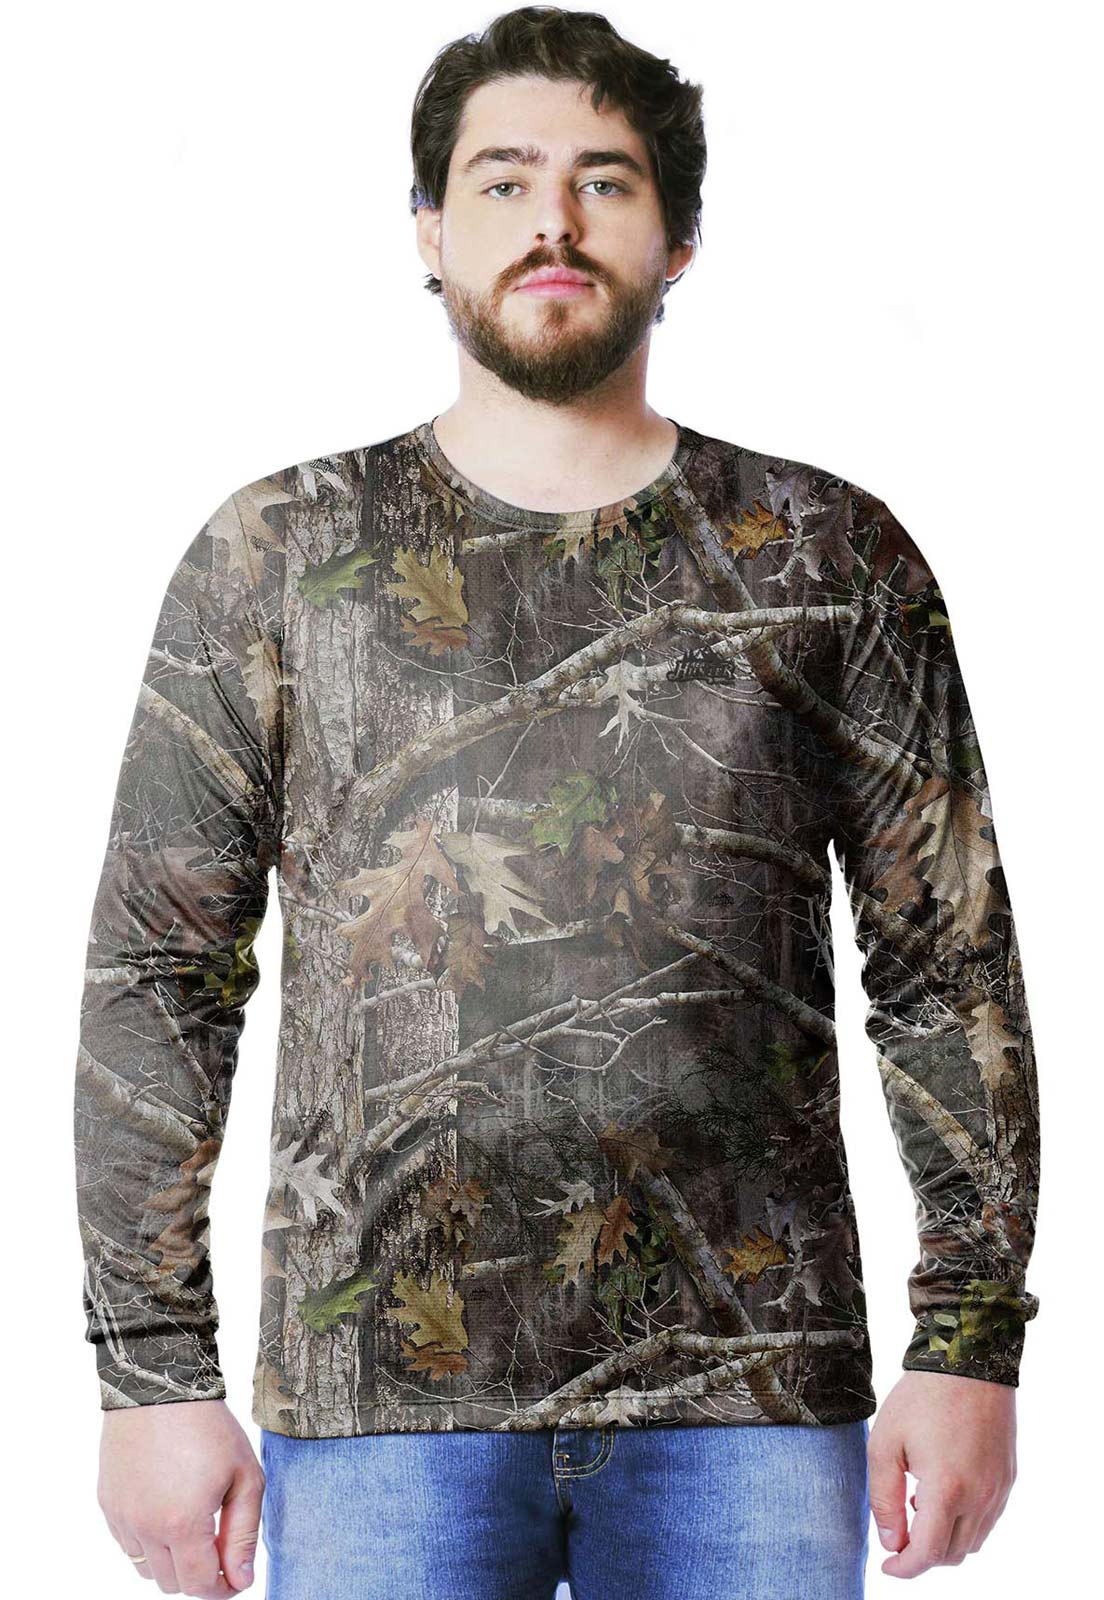 CAMISETA CAMUFLADA REALTREE MASCULINA MANGA LONGA  - REAL HUNTER OUTDOORS